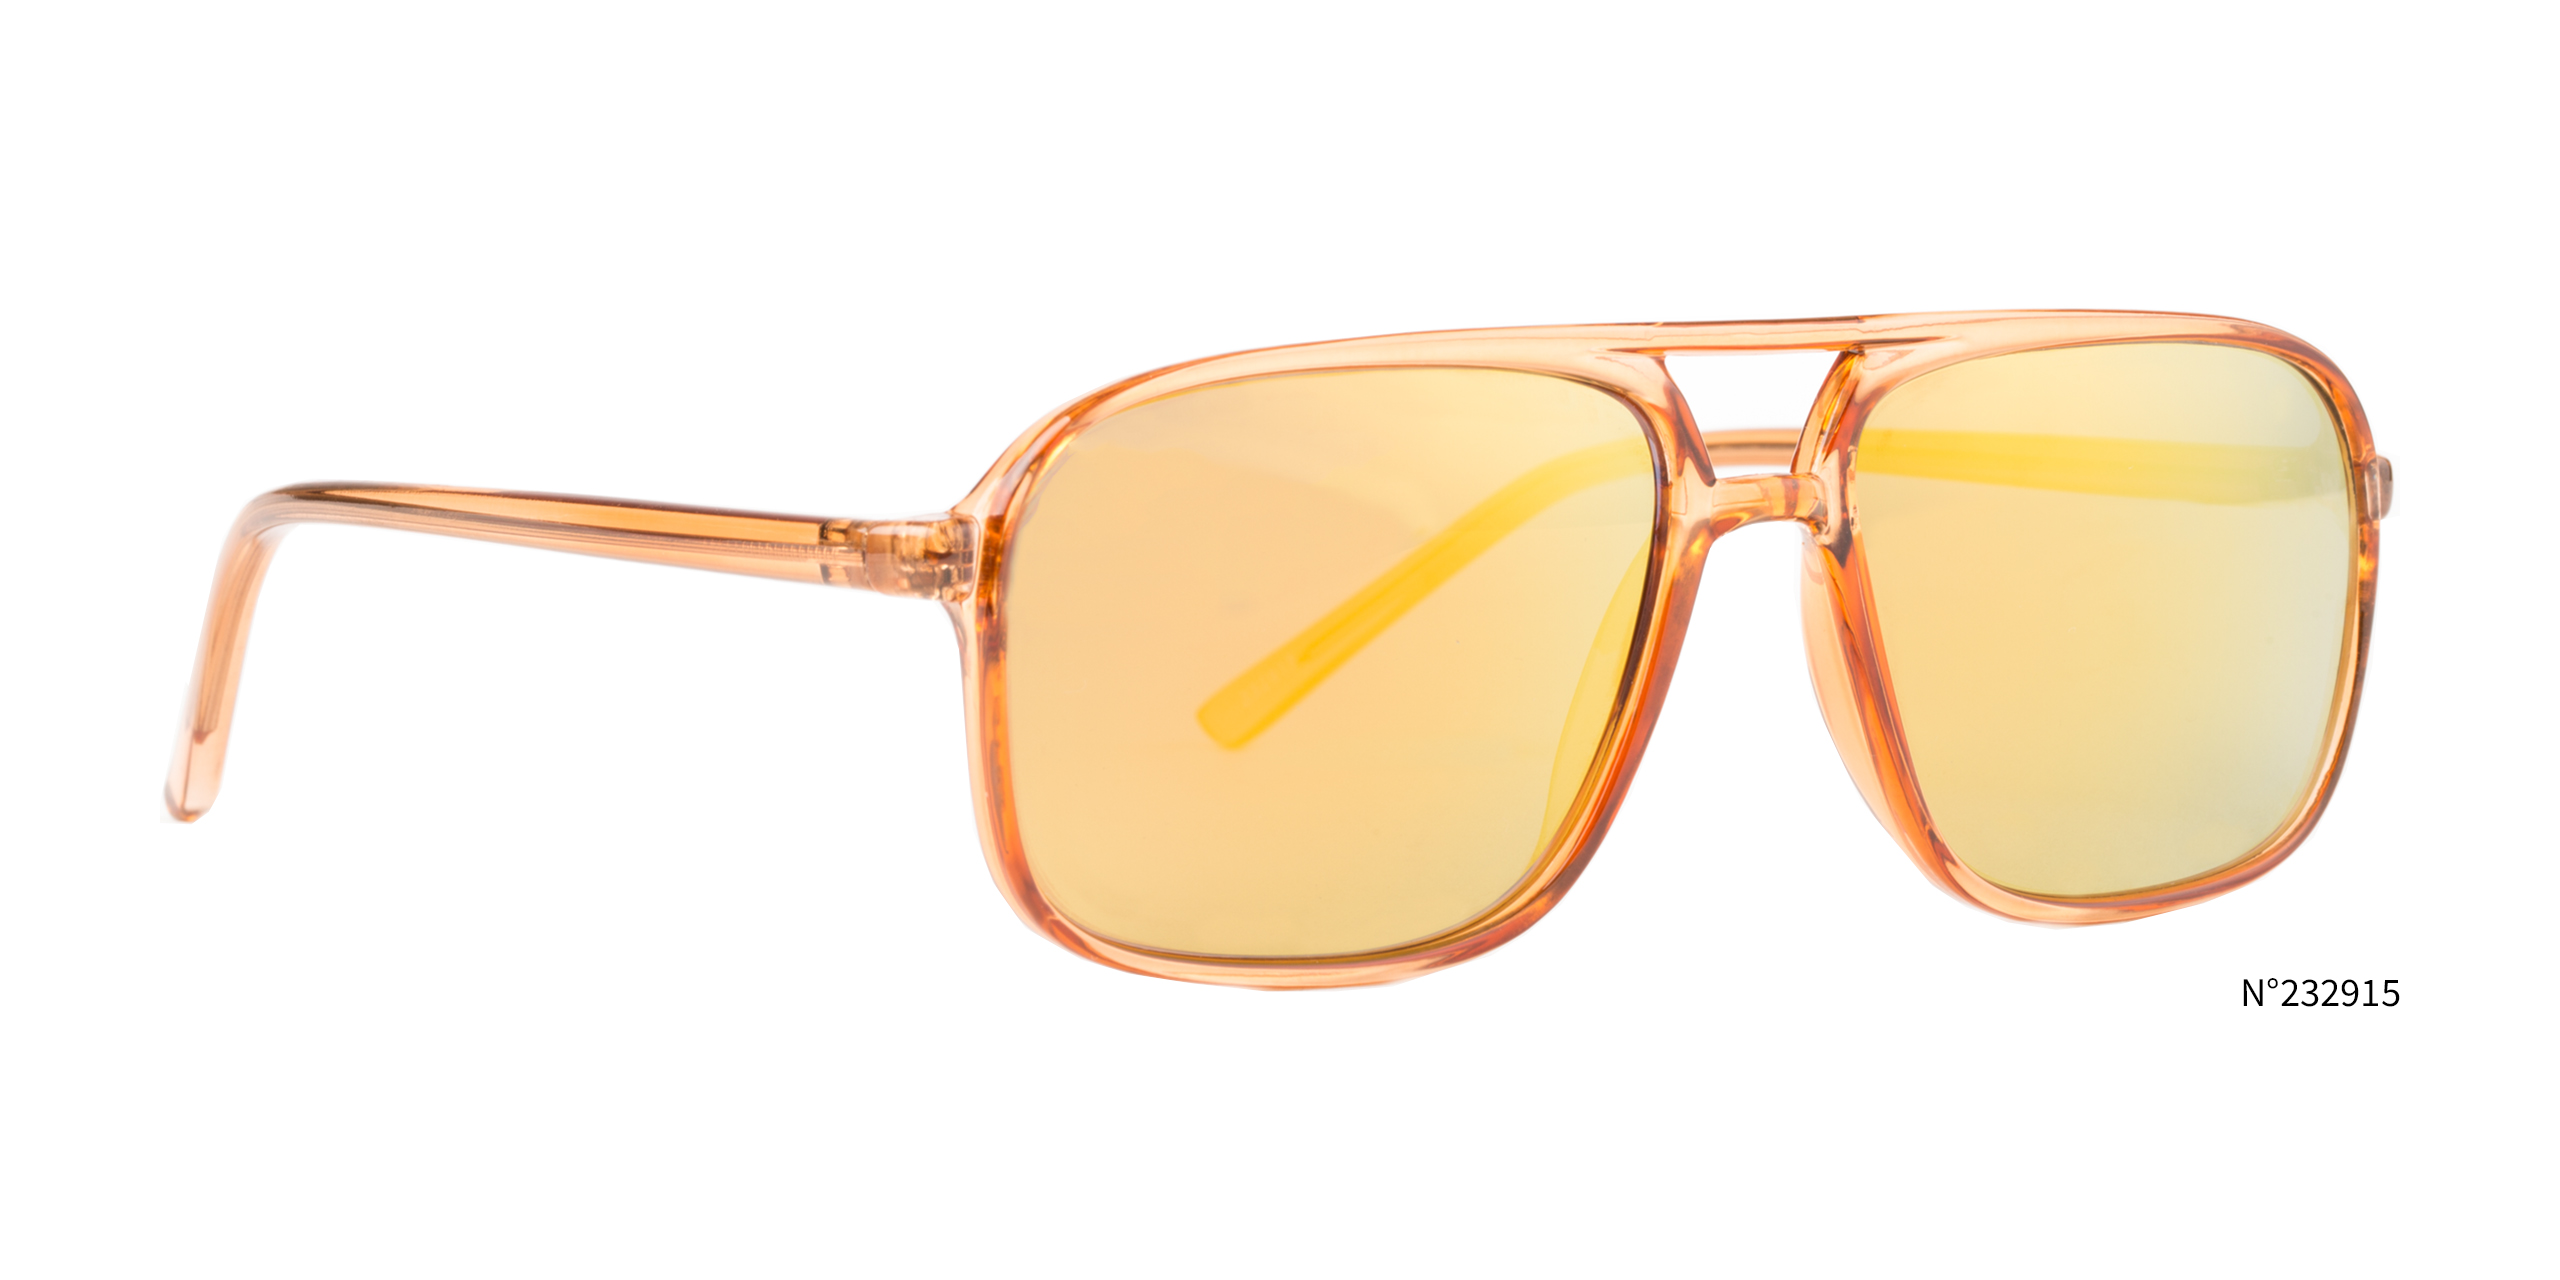 gold cowboy sunglasses